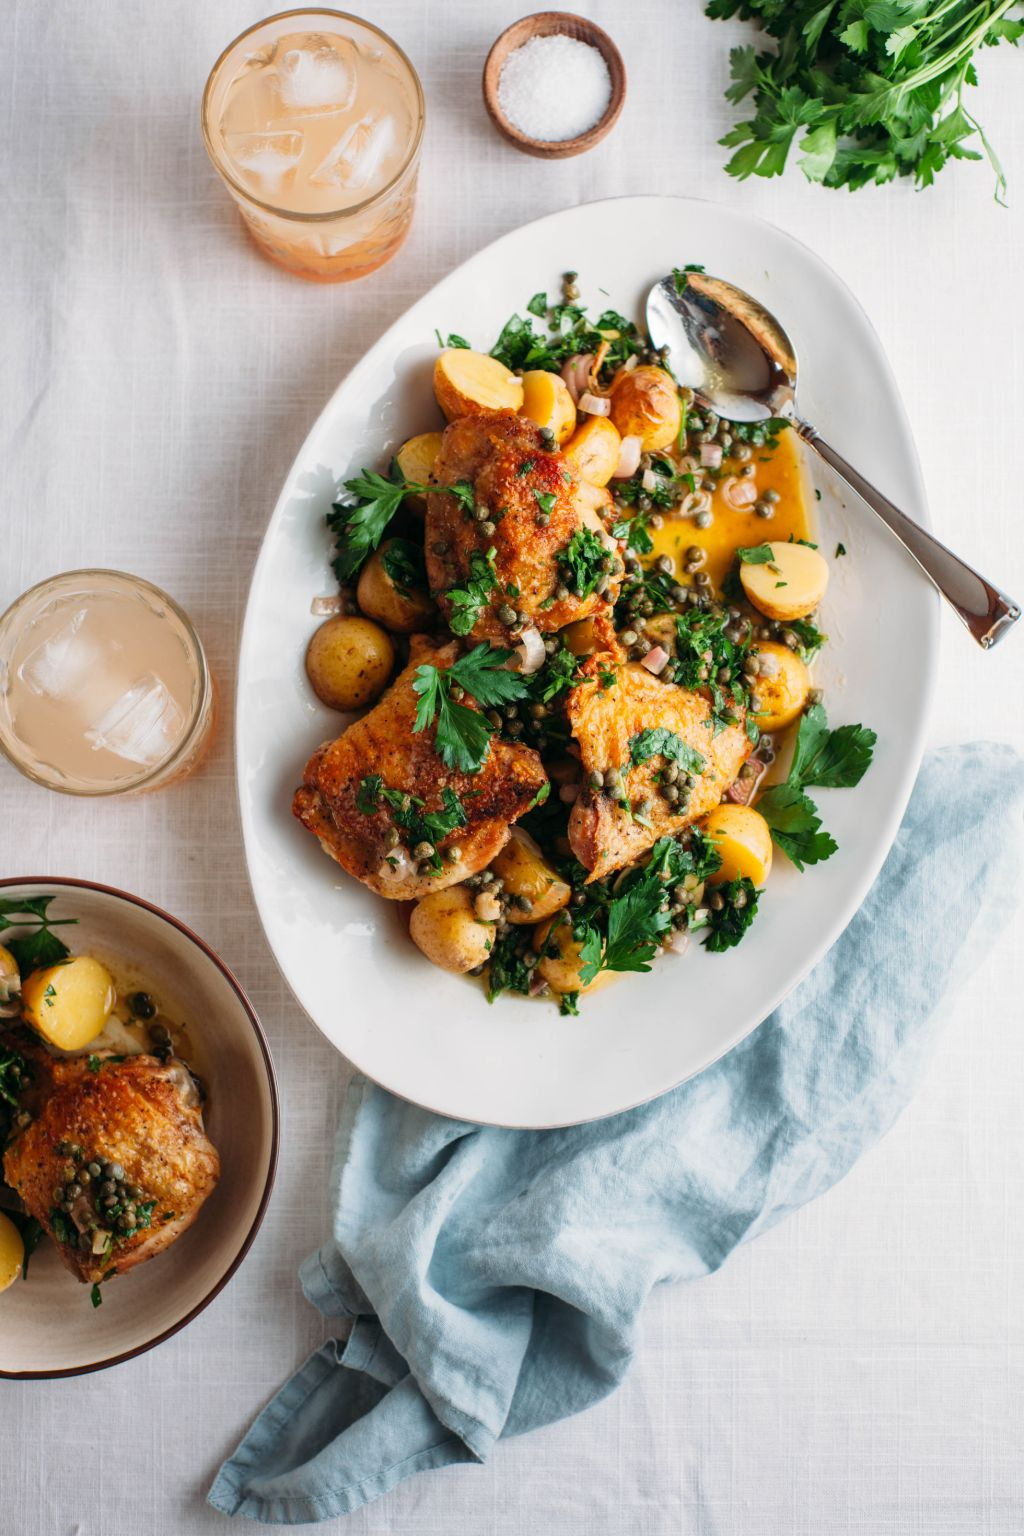 Salt and Vinegar Chicken and Potatoes - Tastemaker Blog